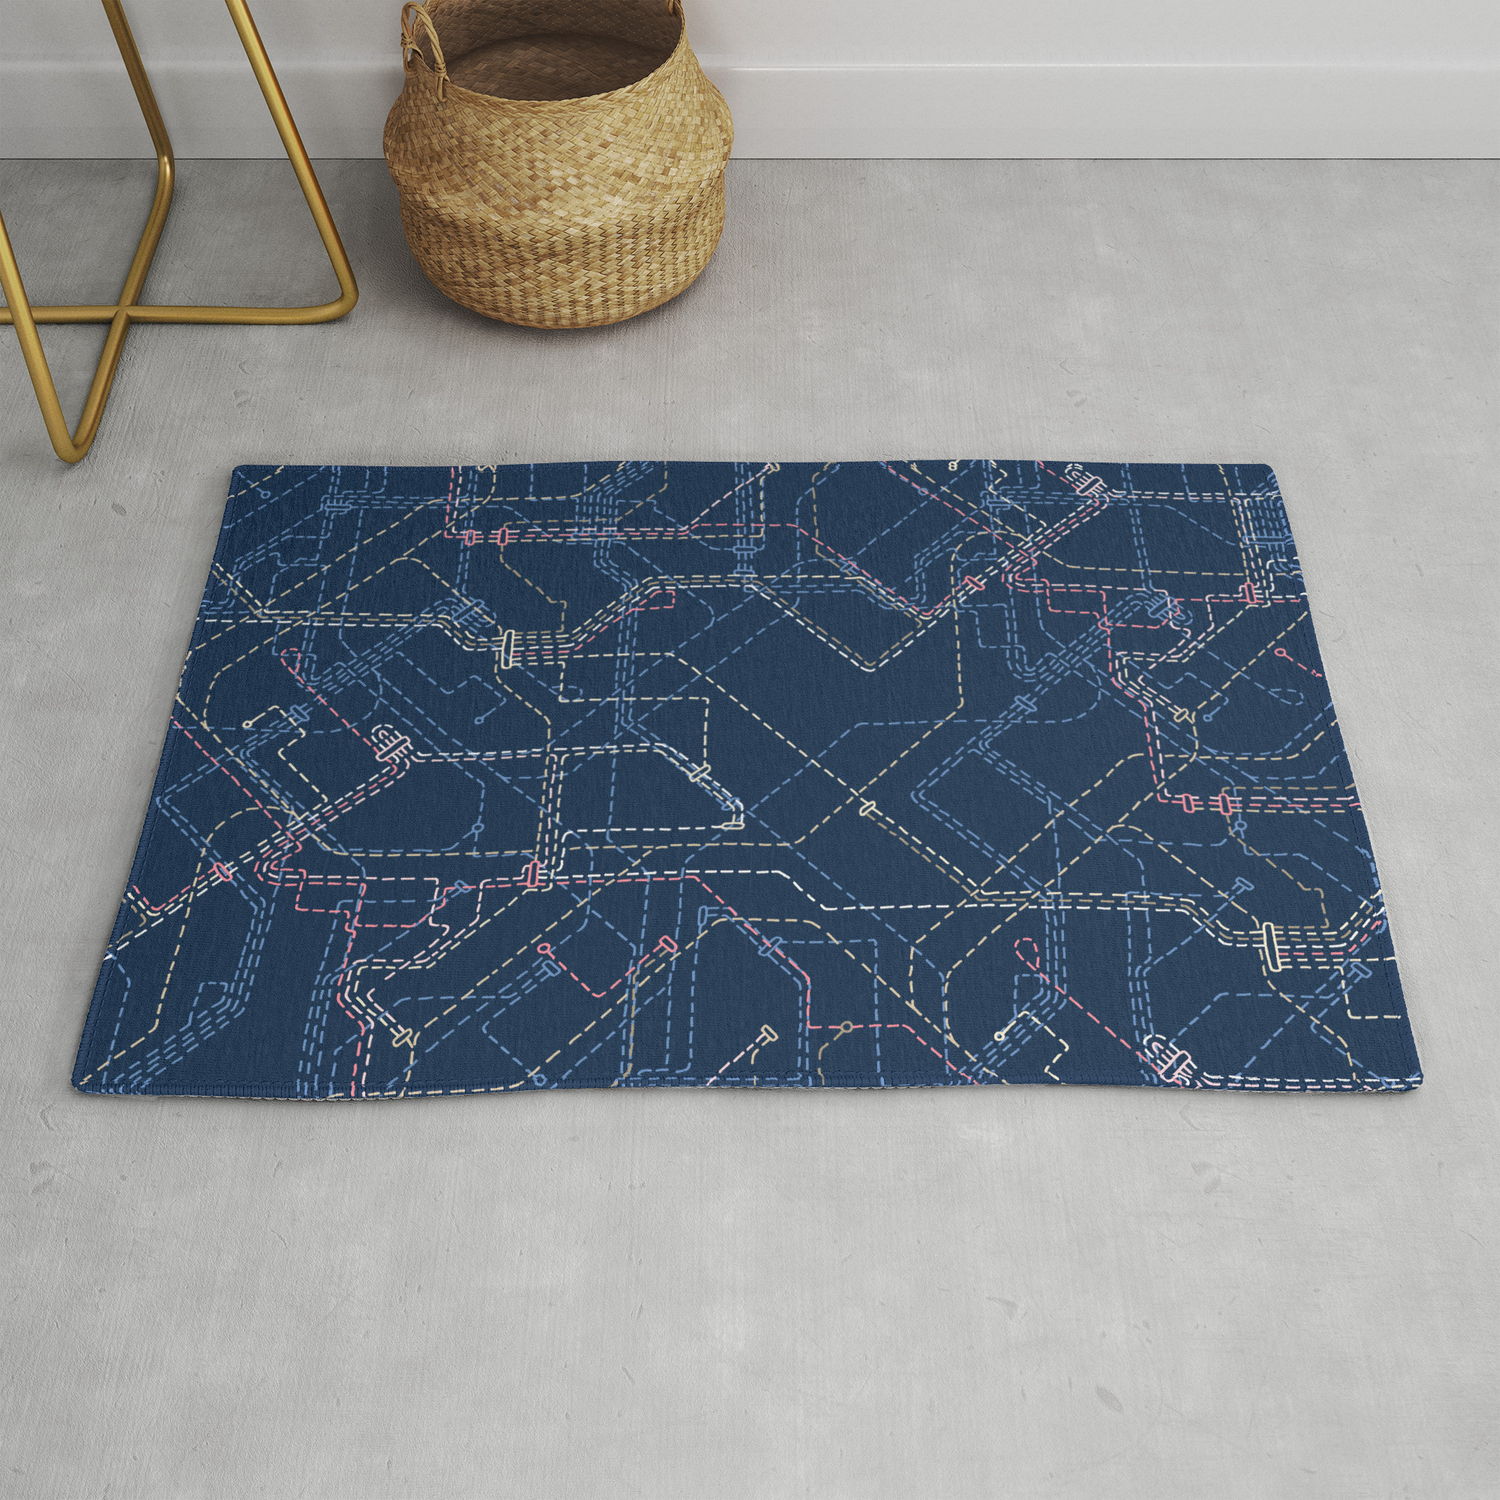 Public Transport Network Rug By